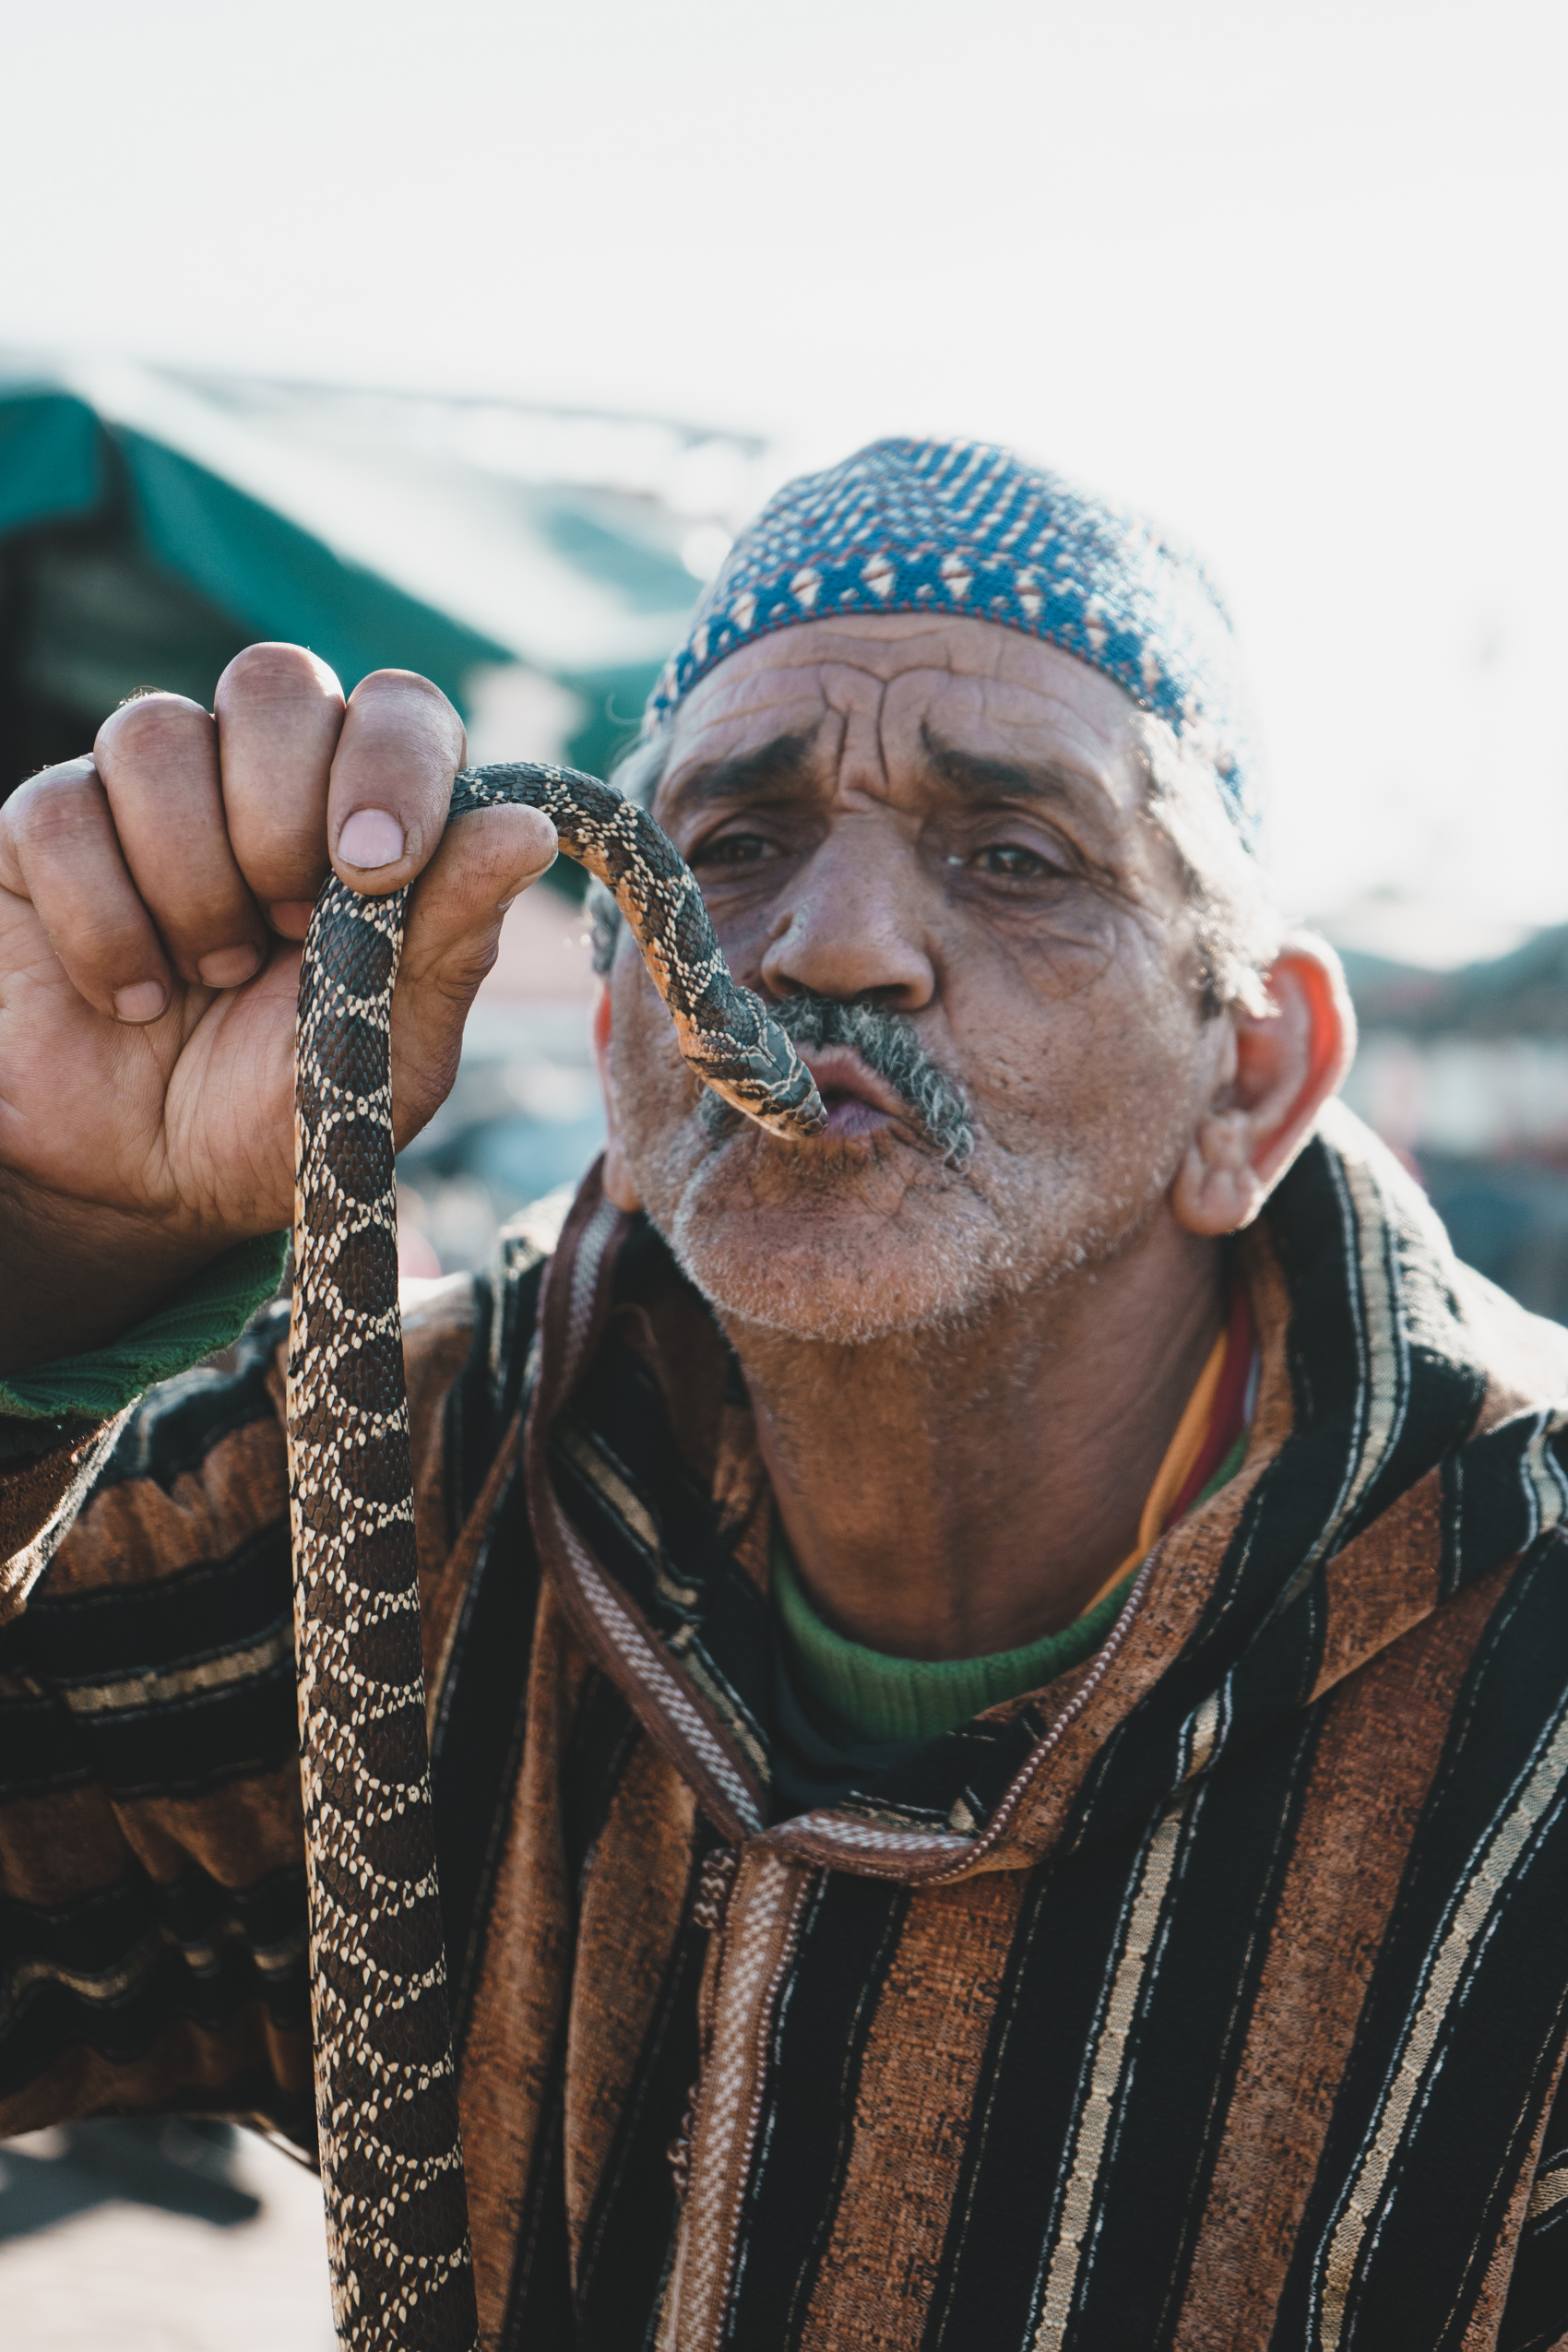 Snake Charmer at Jemaa el-Fnaa Night Market in Marrakech, Morocco